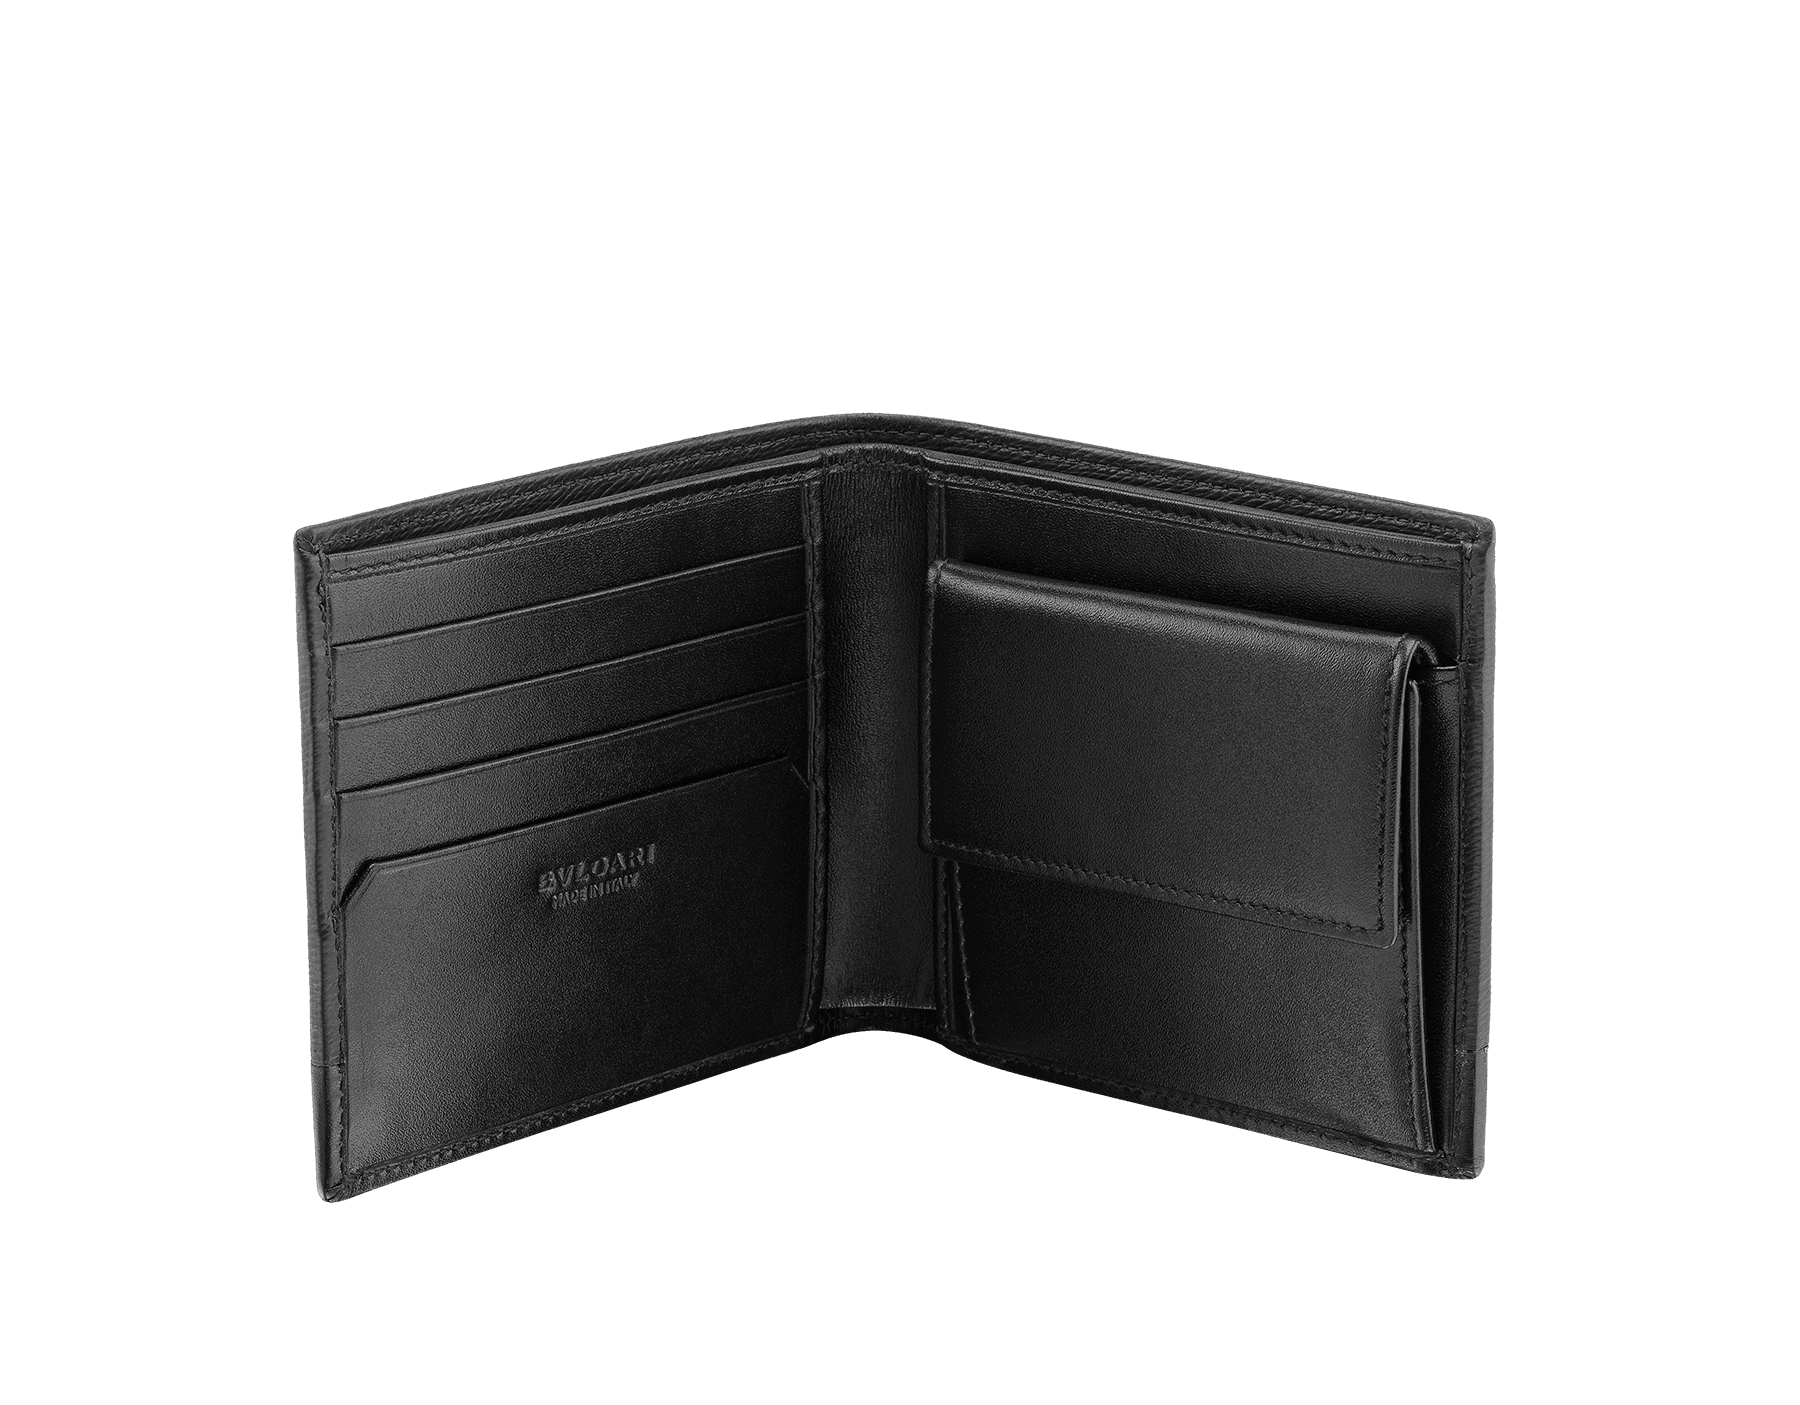 Serpenti Scaglie men's compact wallet in mimetic jade grazed calf leather and black calf leather. Bvlgari logo engraved on the hexagonal scaglie metal plate finished in dark ruthenium. 581-WLT-ITAL image 2